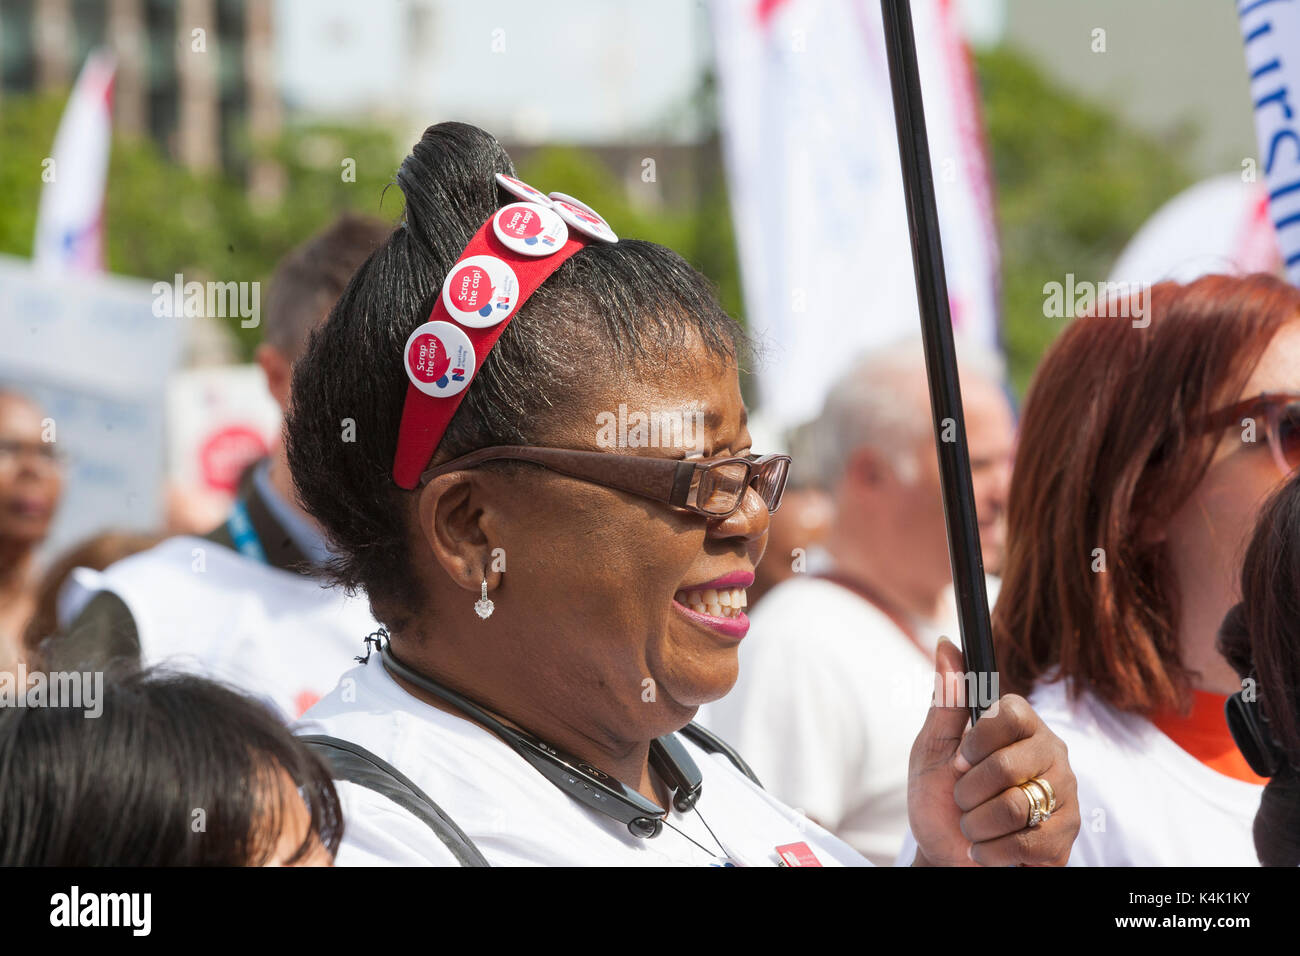 RCN Scrap the Cap Rally: Parliament Square, London UK. 6th September, 2017.  RCN (Royal Collage of Nursing) members - Stock Image